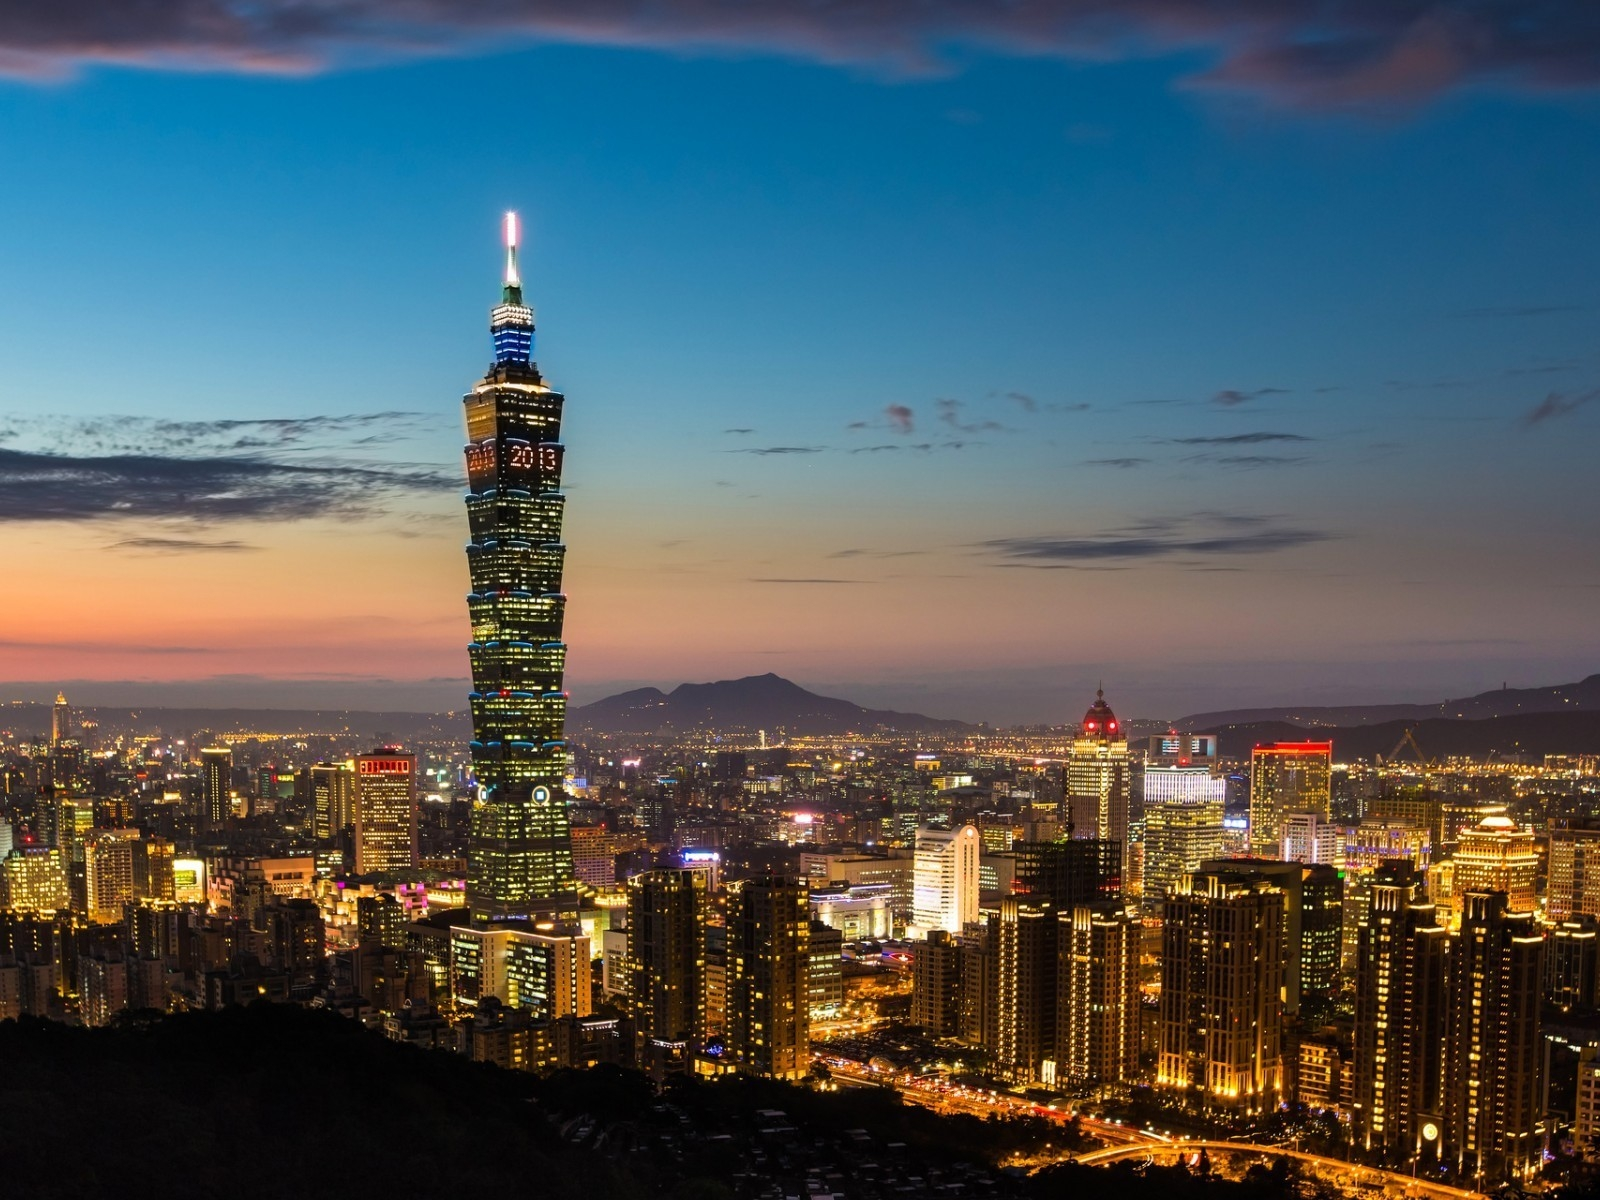 Night in Taipei for 1600 x 1200 resolution